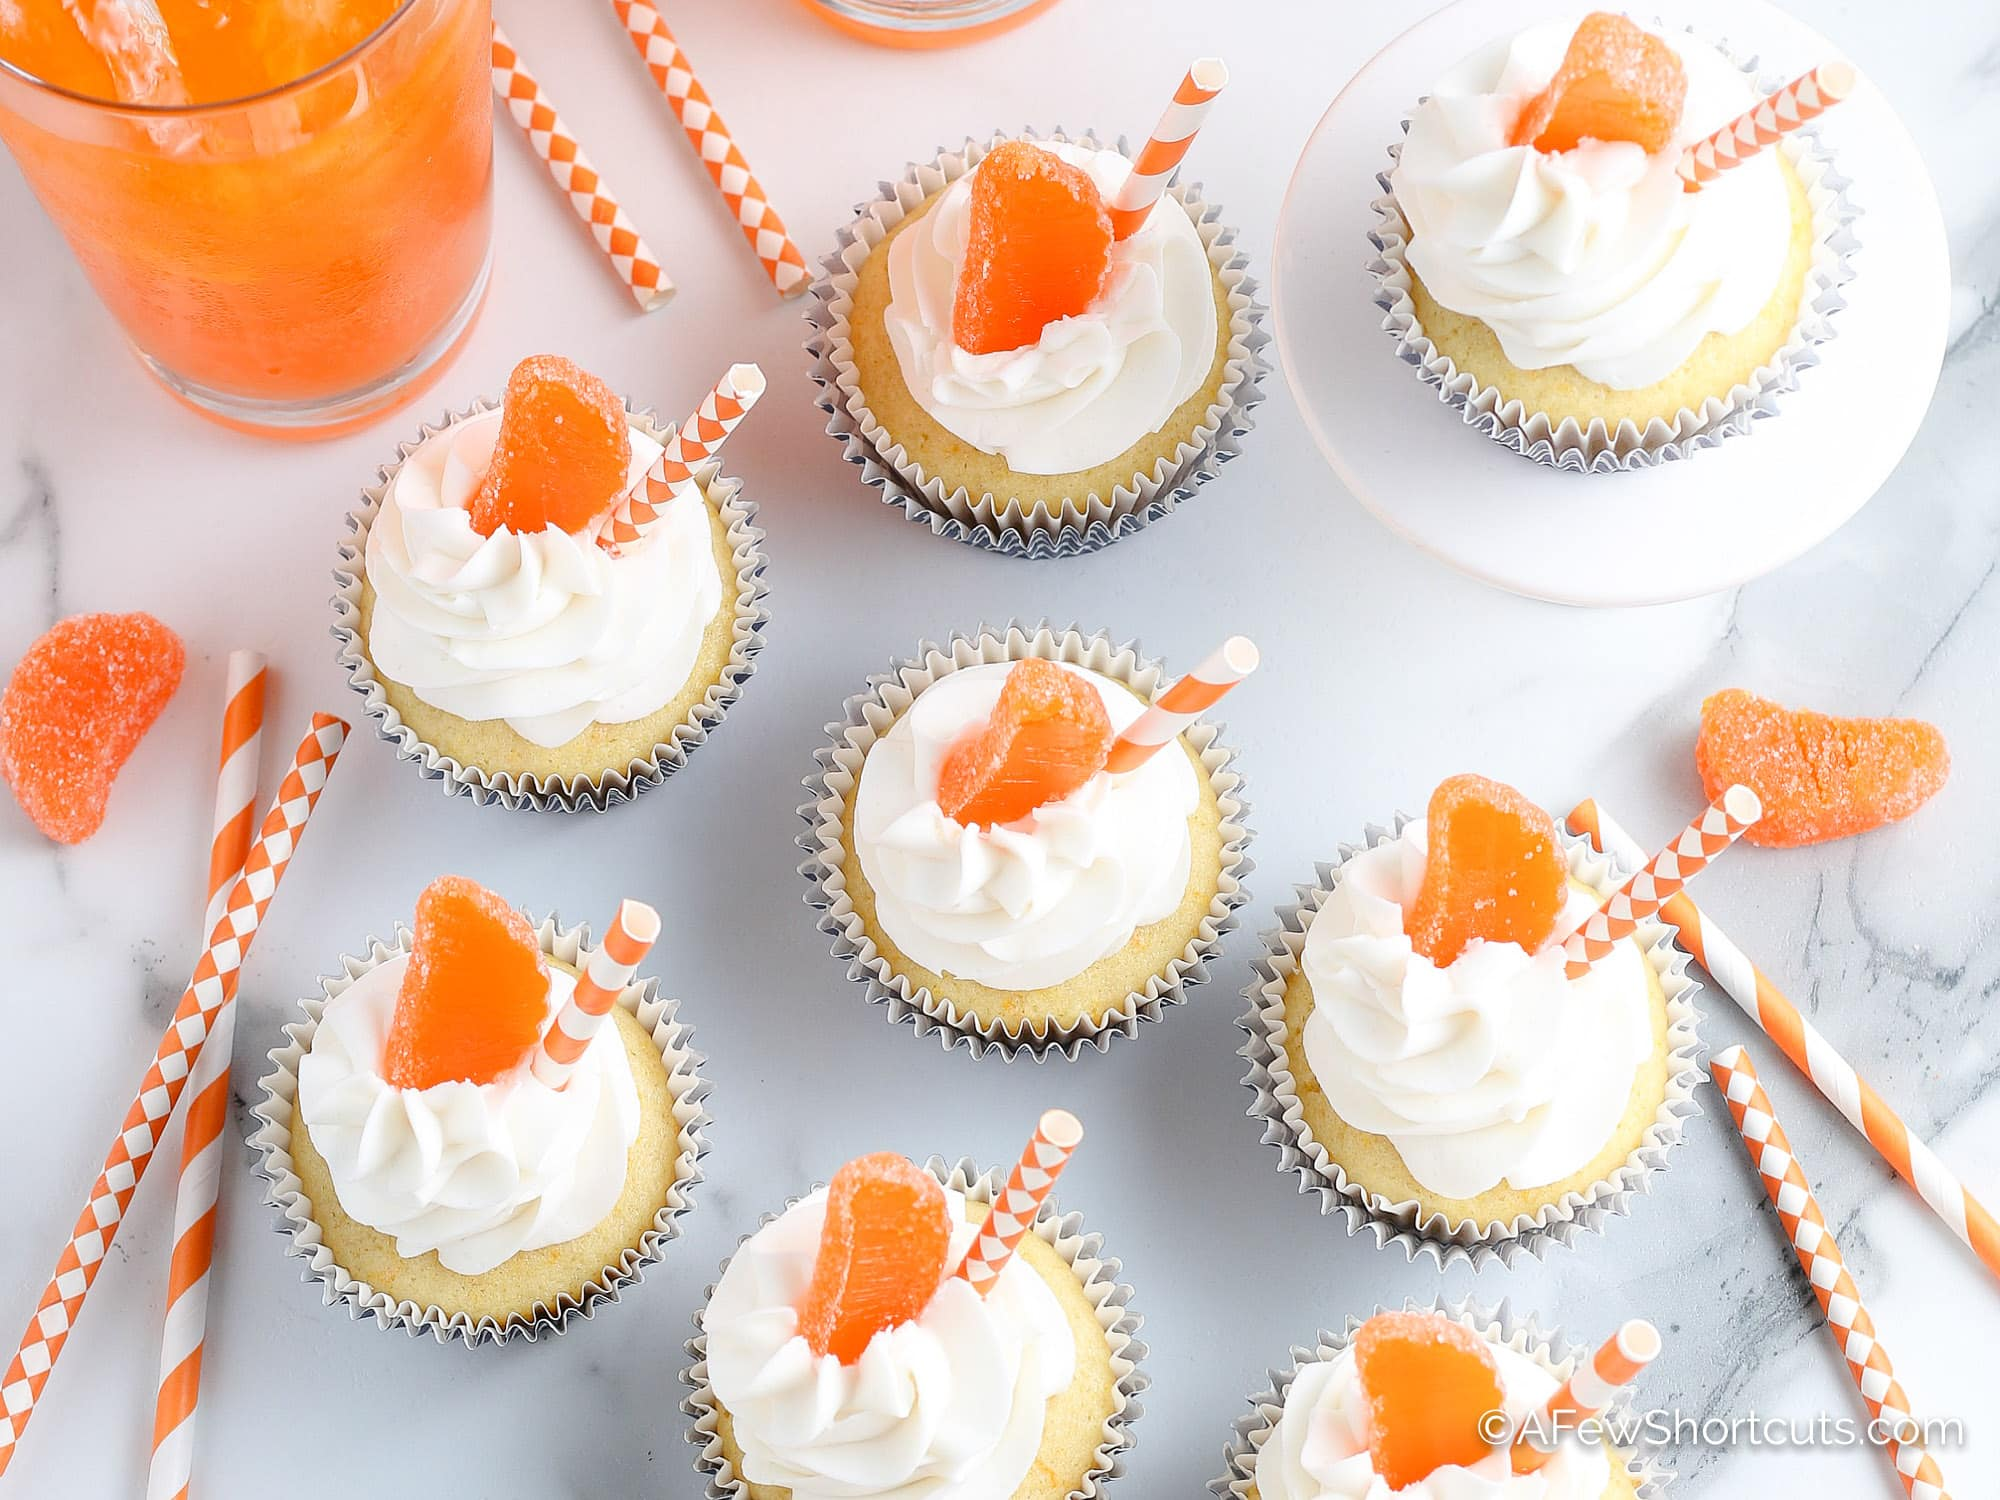 Orange Creamsicle Cupcakes Overhead picture with orange soda and straws